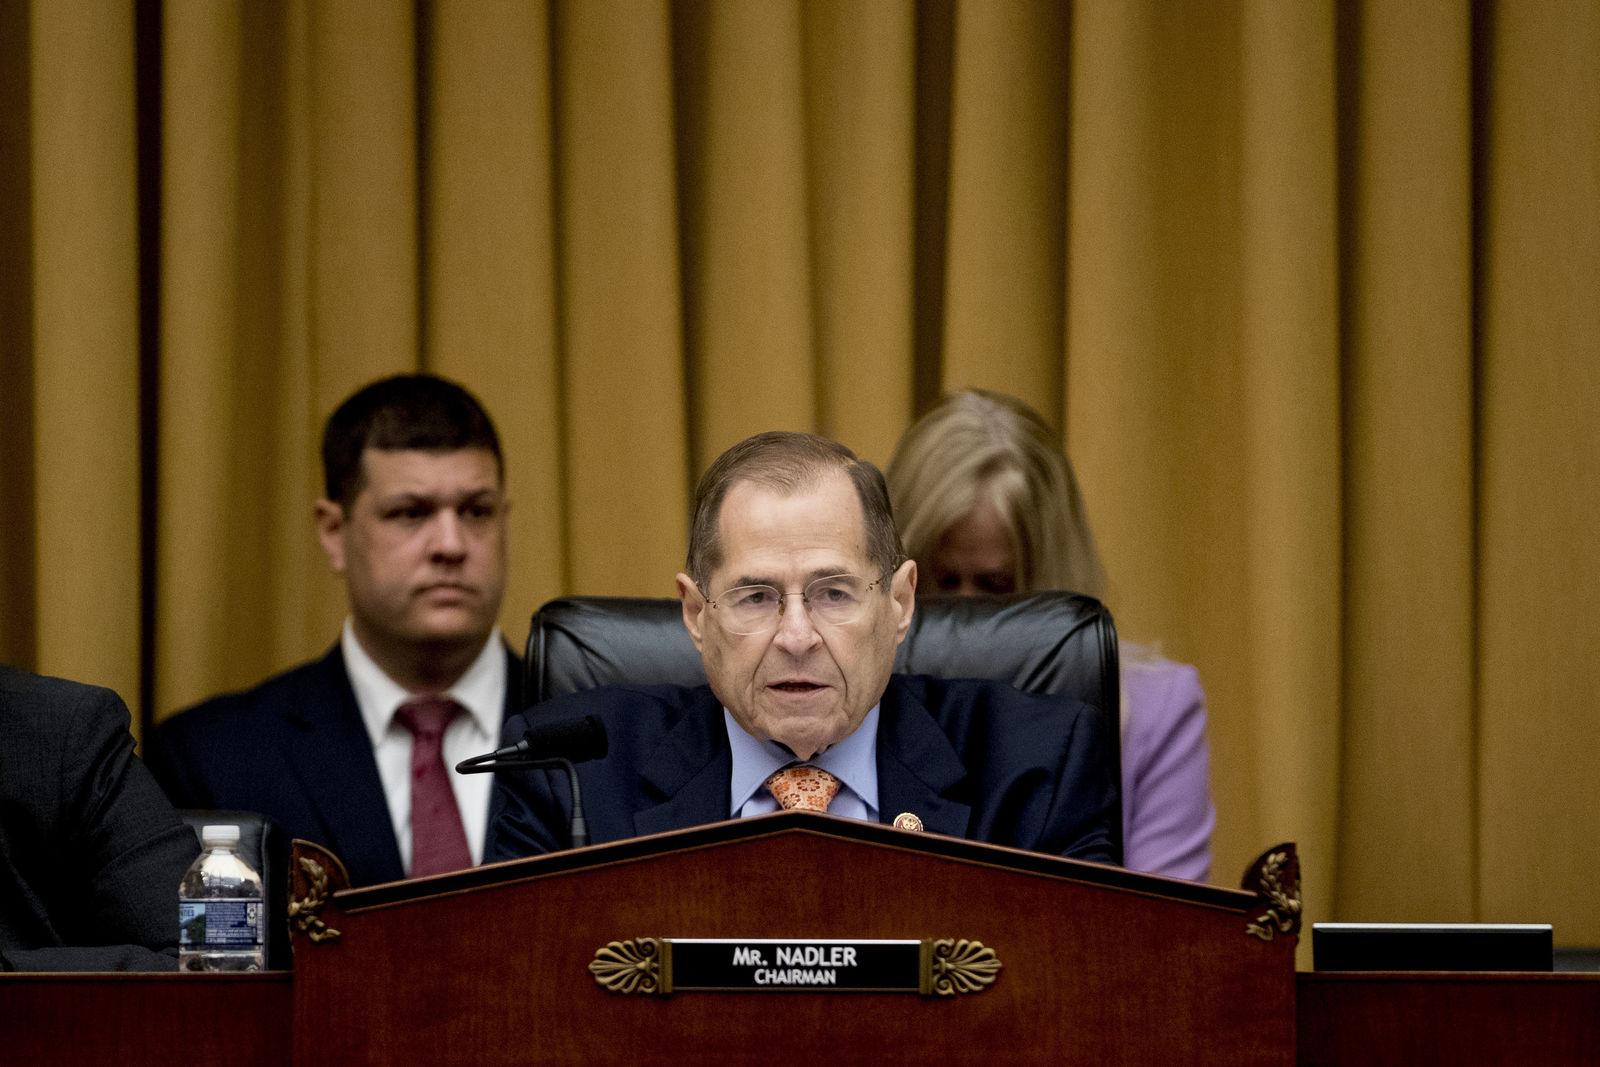 Judiciary Committee Chairman Jerrold Nadler, D-N.Y., speaks at a House Judiciary Committee hearing without former White House Counsel Don McGahn, who was a key figure in special counsel Robert Mueller's investigation, on Capitol Hill in Washington, Tuesday, May 21, 2019. President Donald Trump directed McGahn to defy a congressional subpoena to testify but the committee's chairman, Rep. Jerrold Nadler, D-N.Y., has threatened to hold McGahn in contempt of Congress if he doesn't appear. (AP Photo/Andrew Harnik)